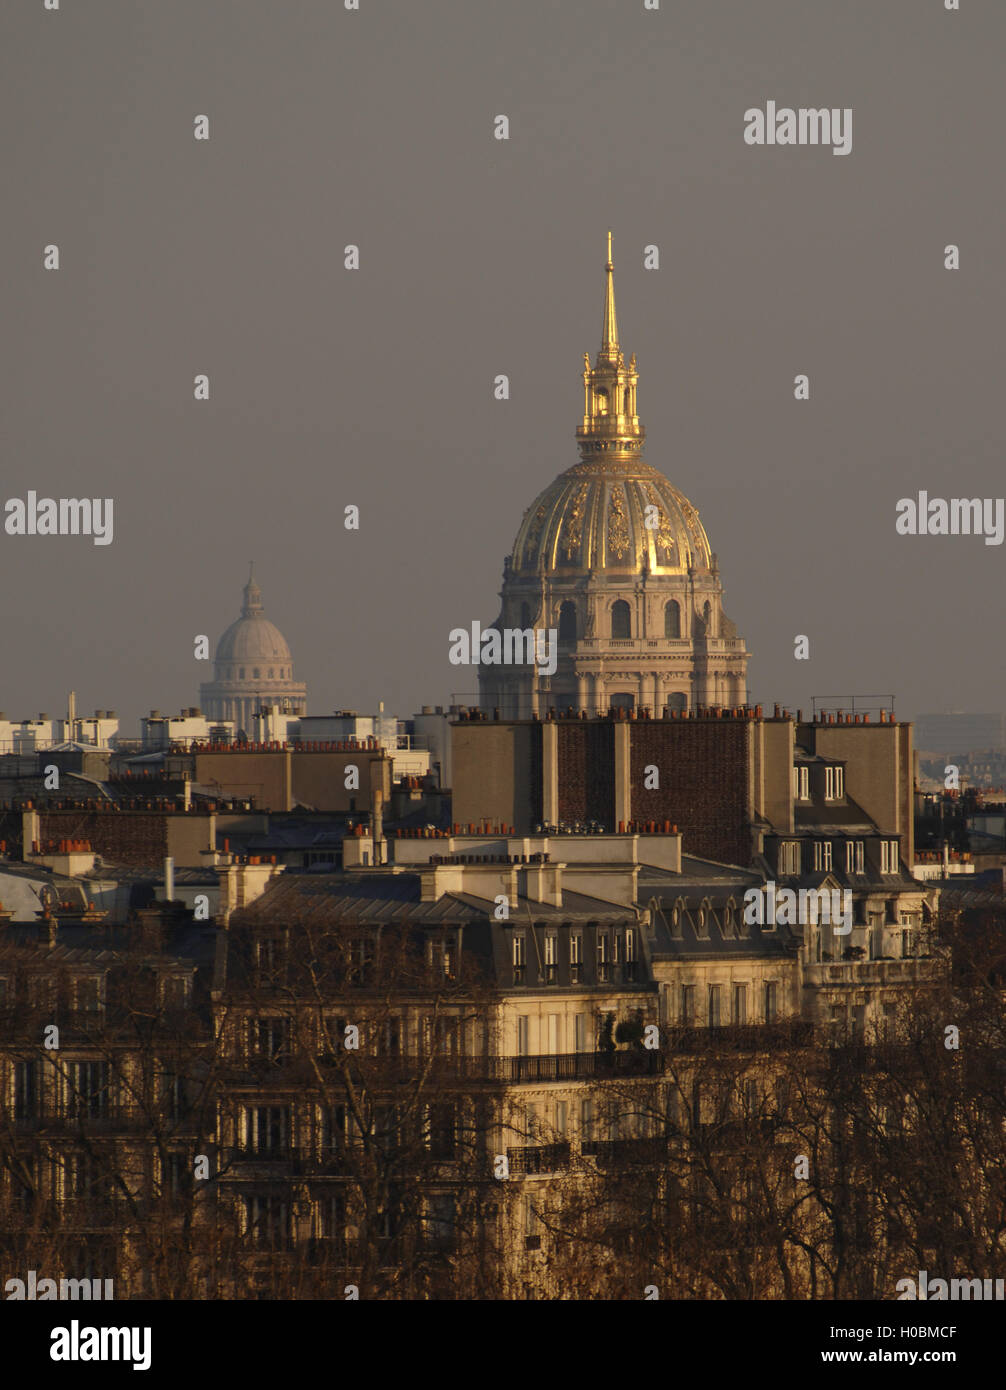 France. Paris. Cityscape. In the background stands the golden dome of the Saint Louis des Invalides Cathedral, built - Stock Image